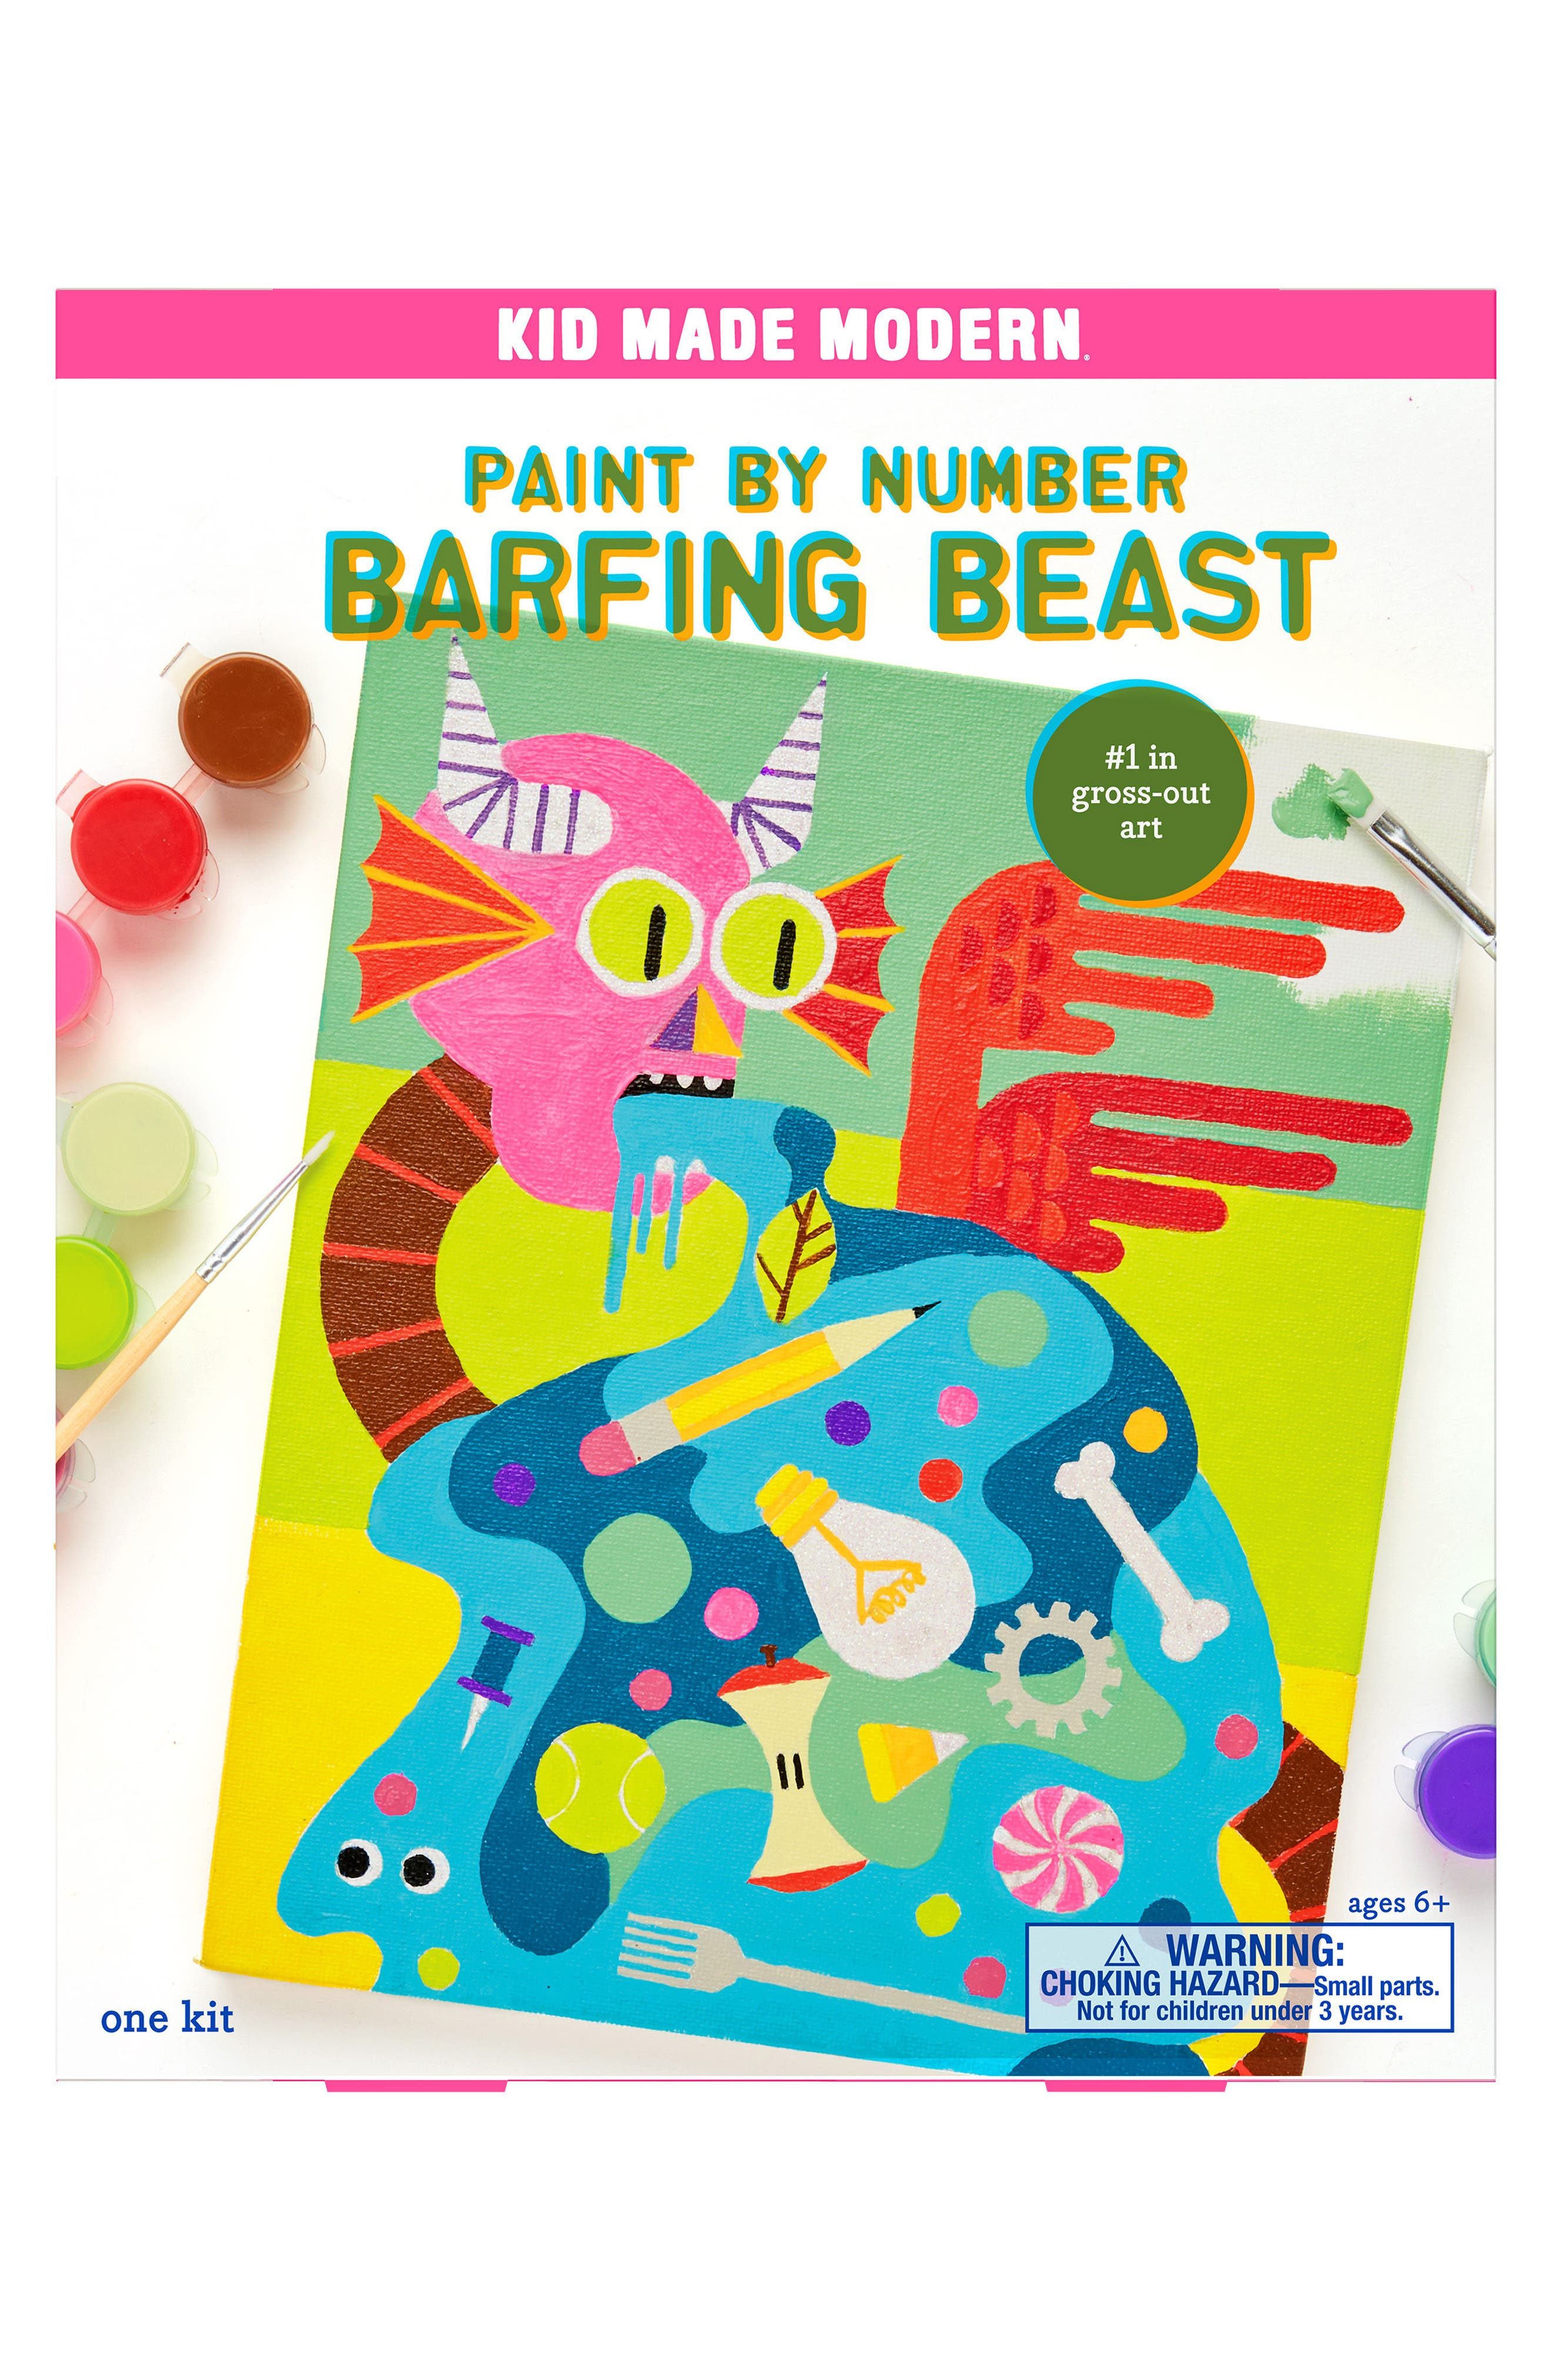 Main Image - Kid Made Modern Barfing Beast Paint by Number Kit